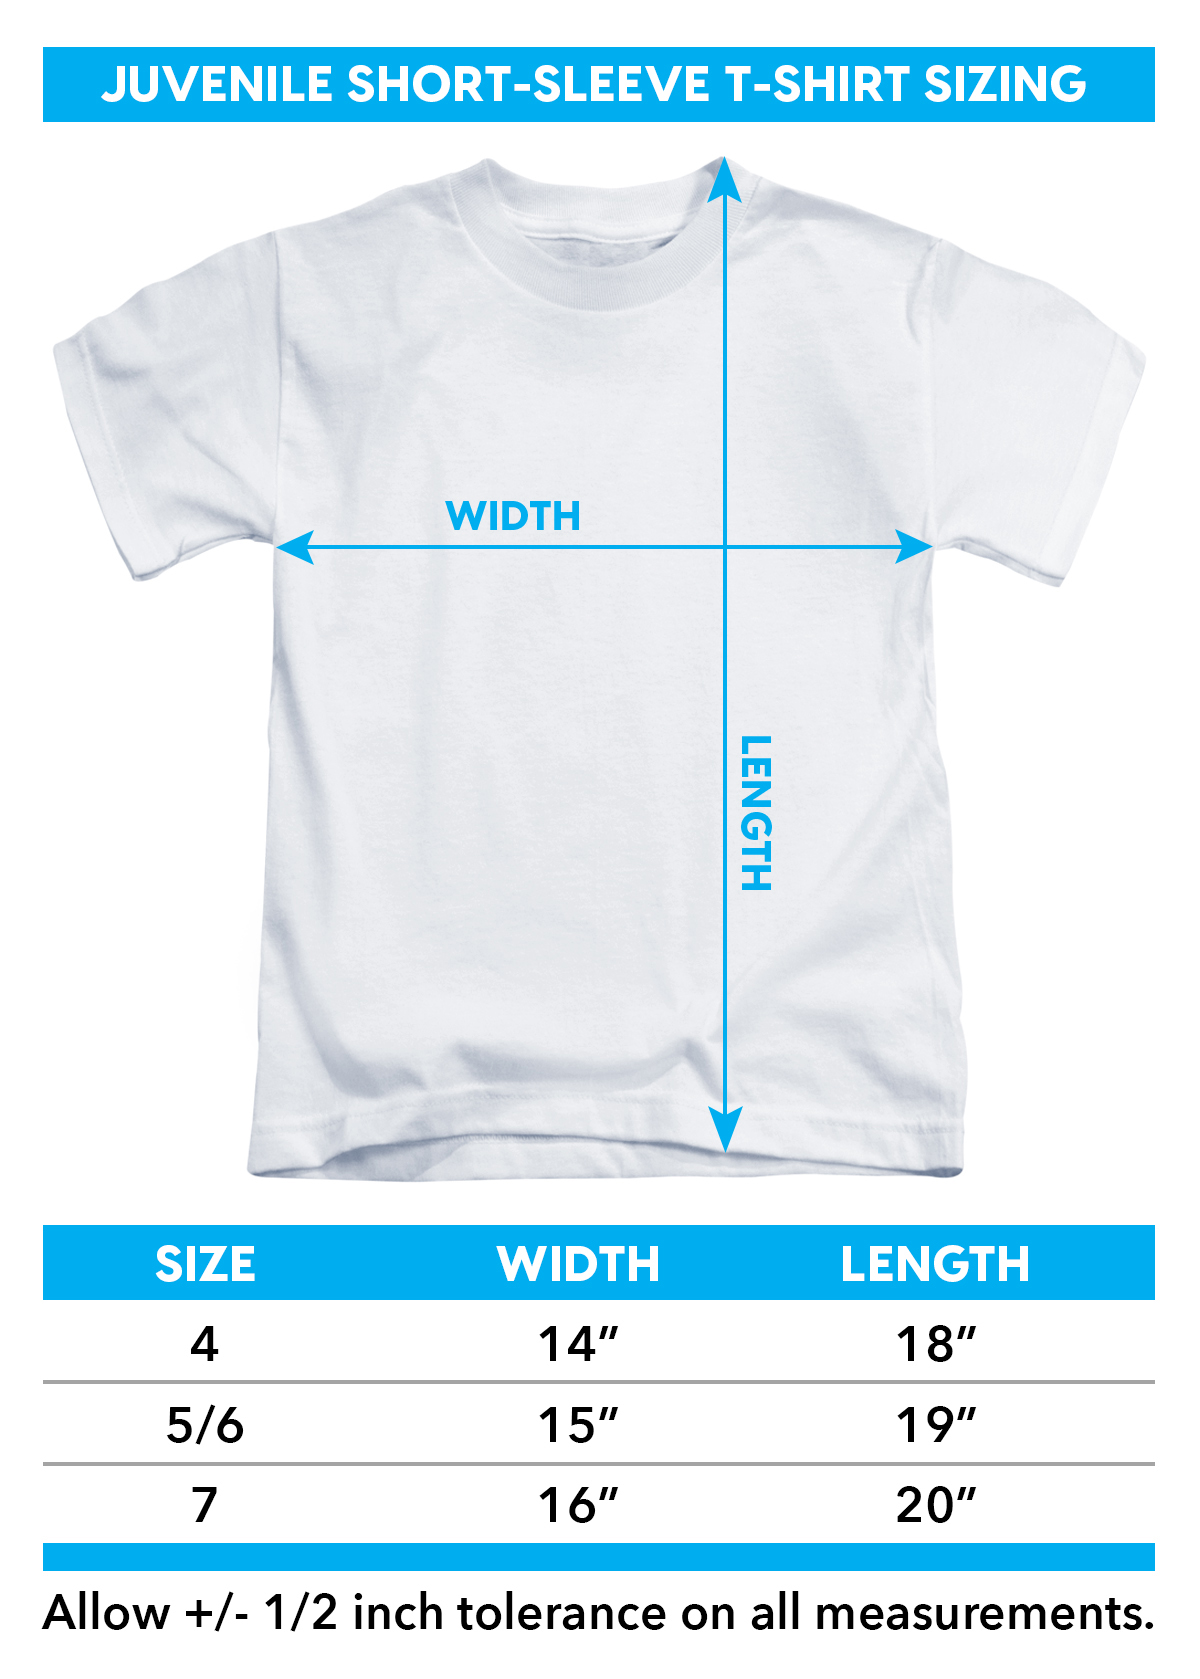 Sizing chart in inches for Stevie Ray Vaughan Kids T-Shirt - Texas Flood TRV-SRV100-KT